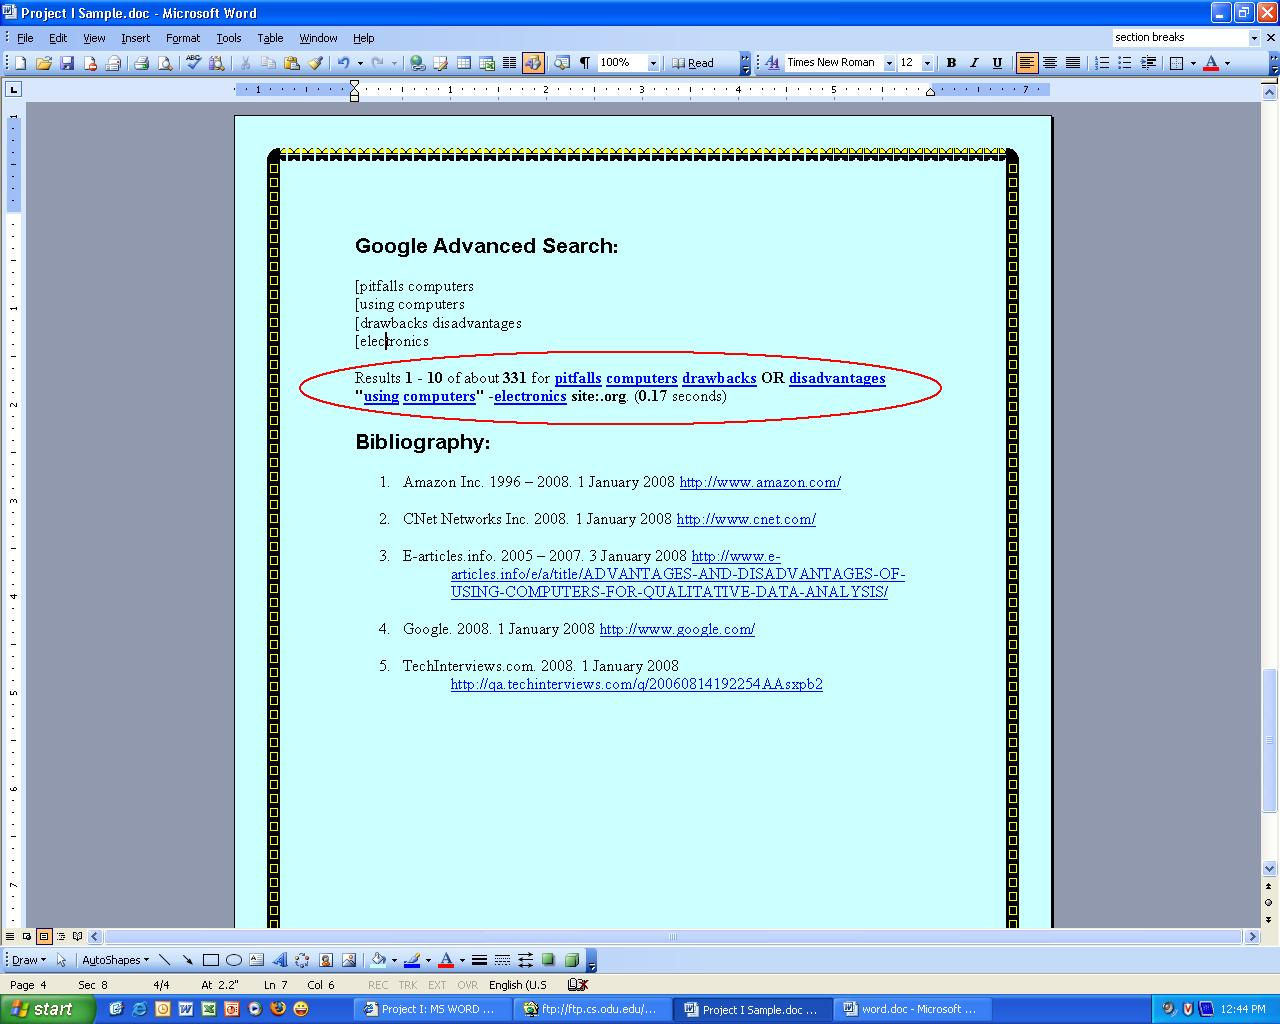 Bibliography clipart search engine. Project i ms word